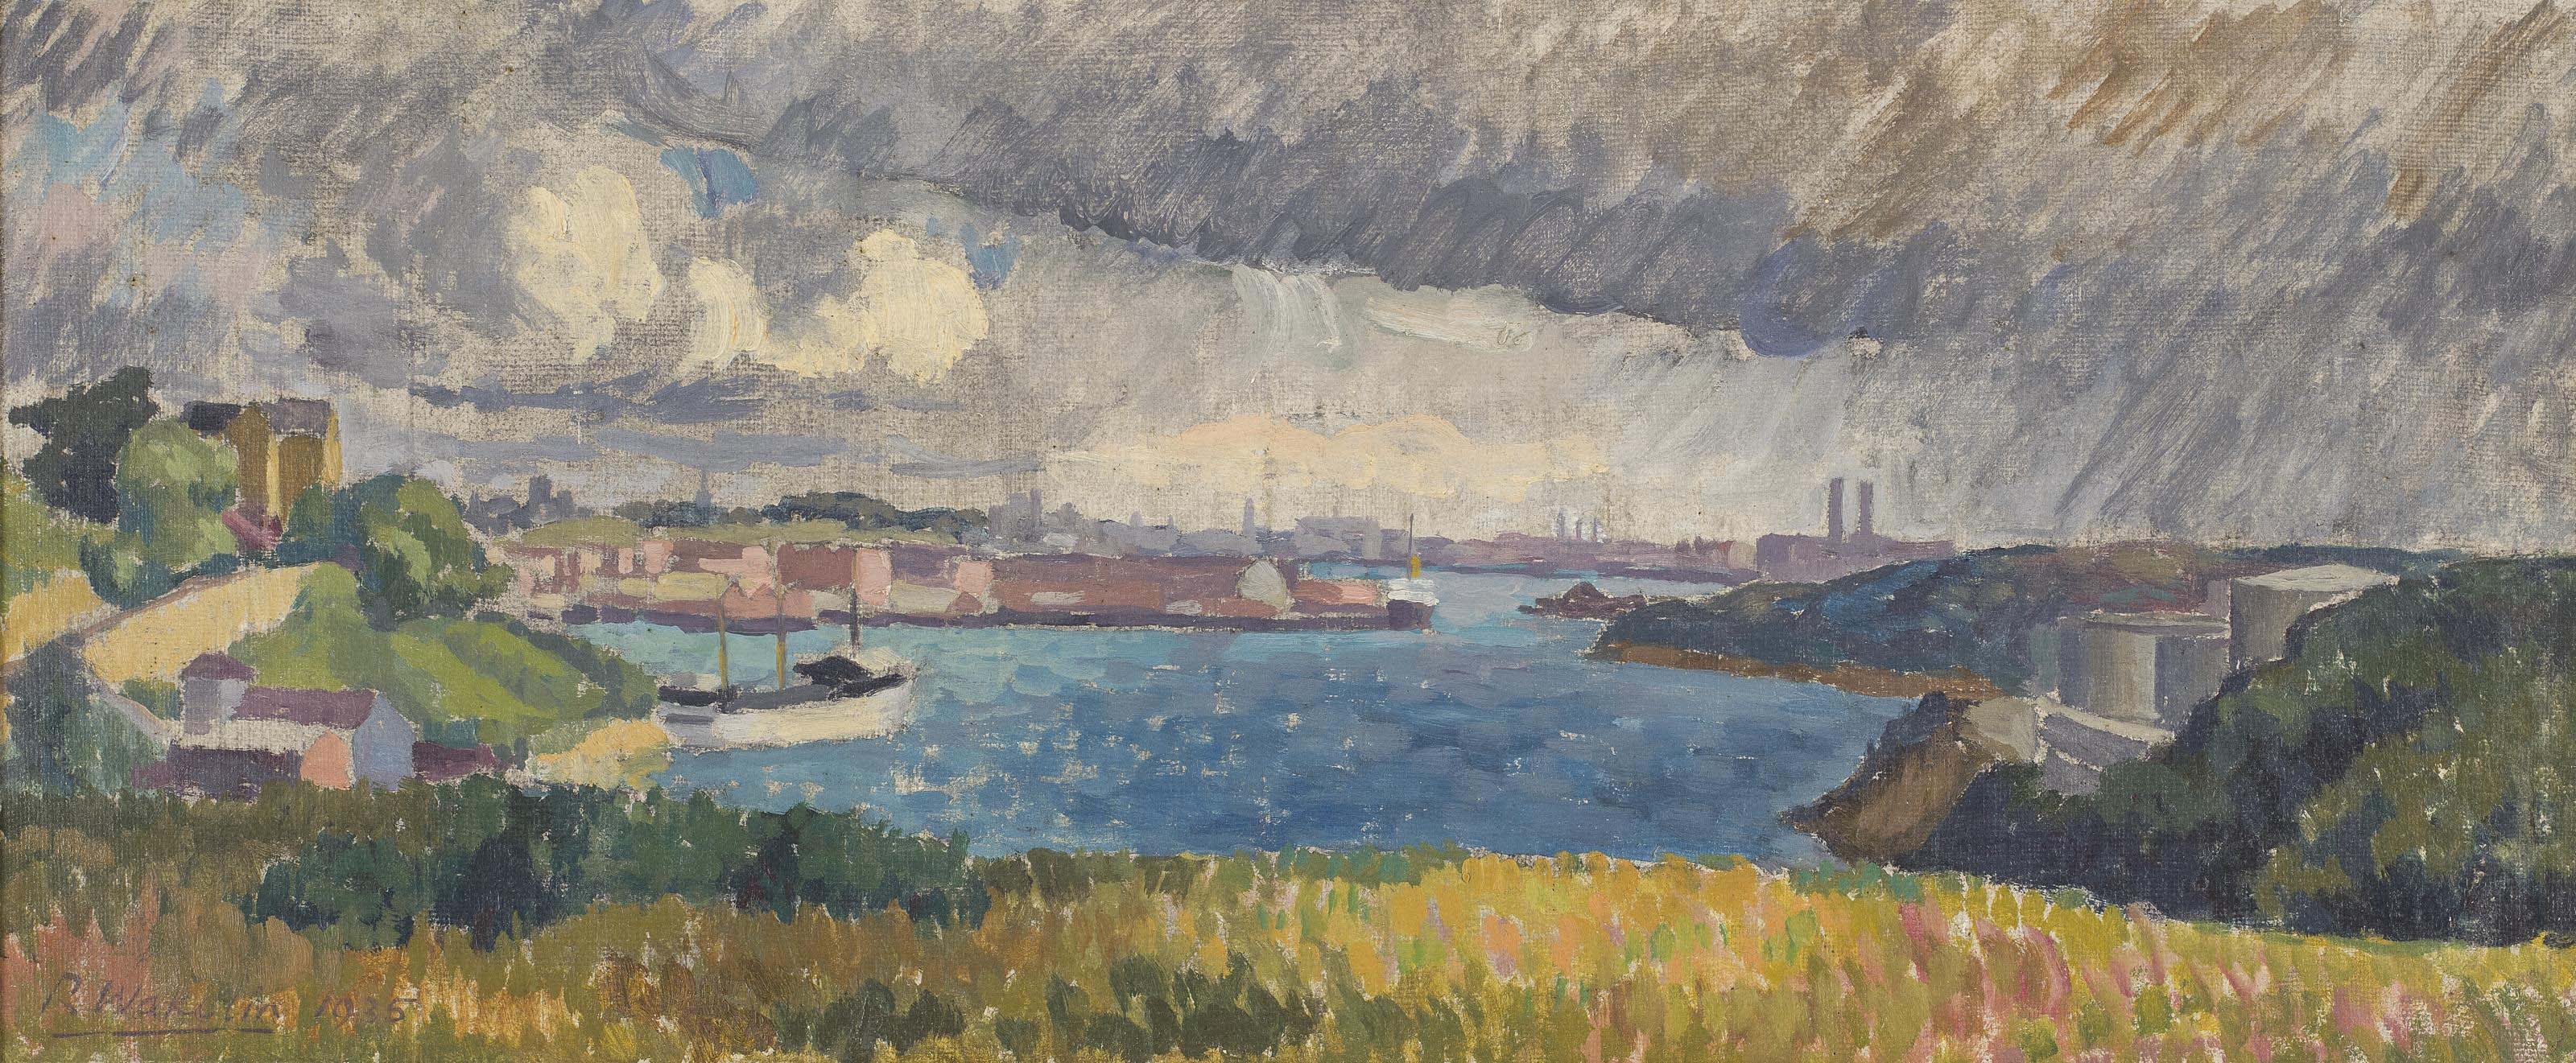 Storm over the Bay, 1935